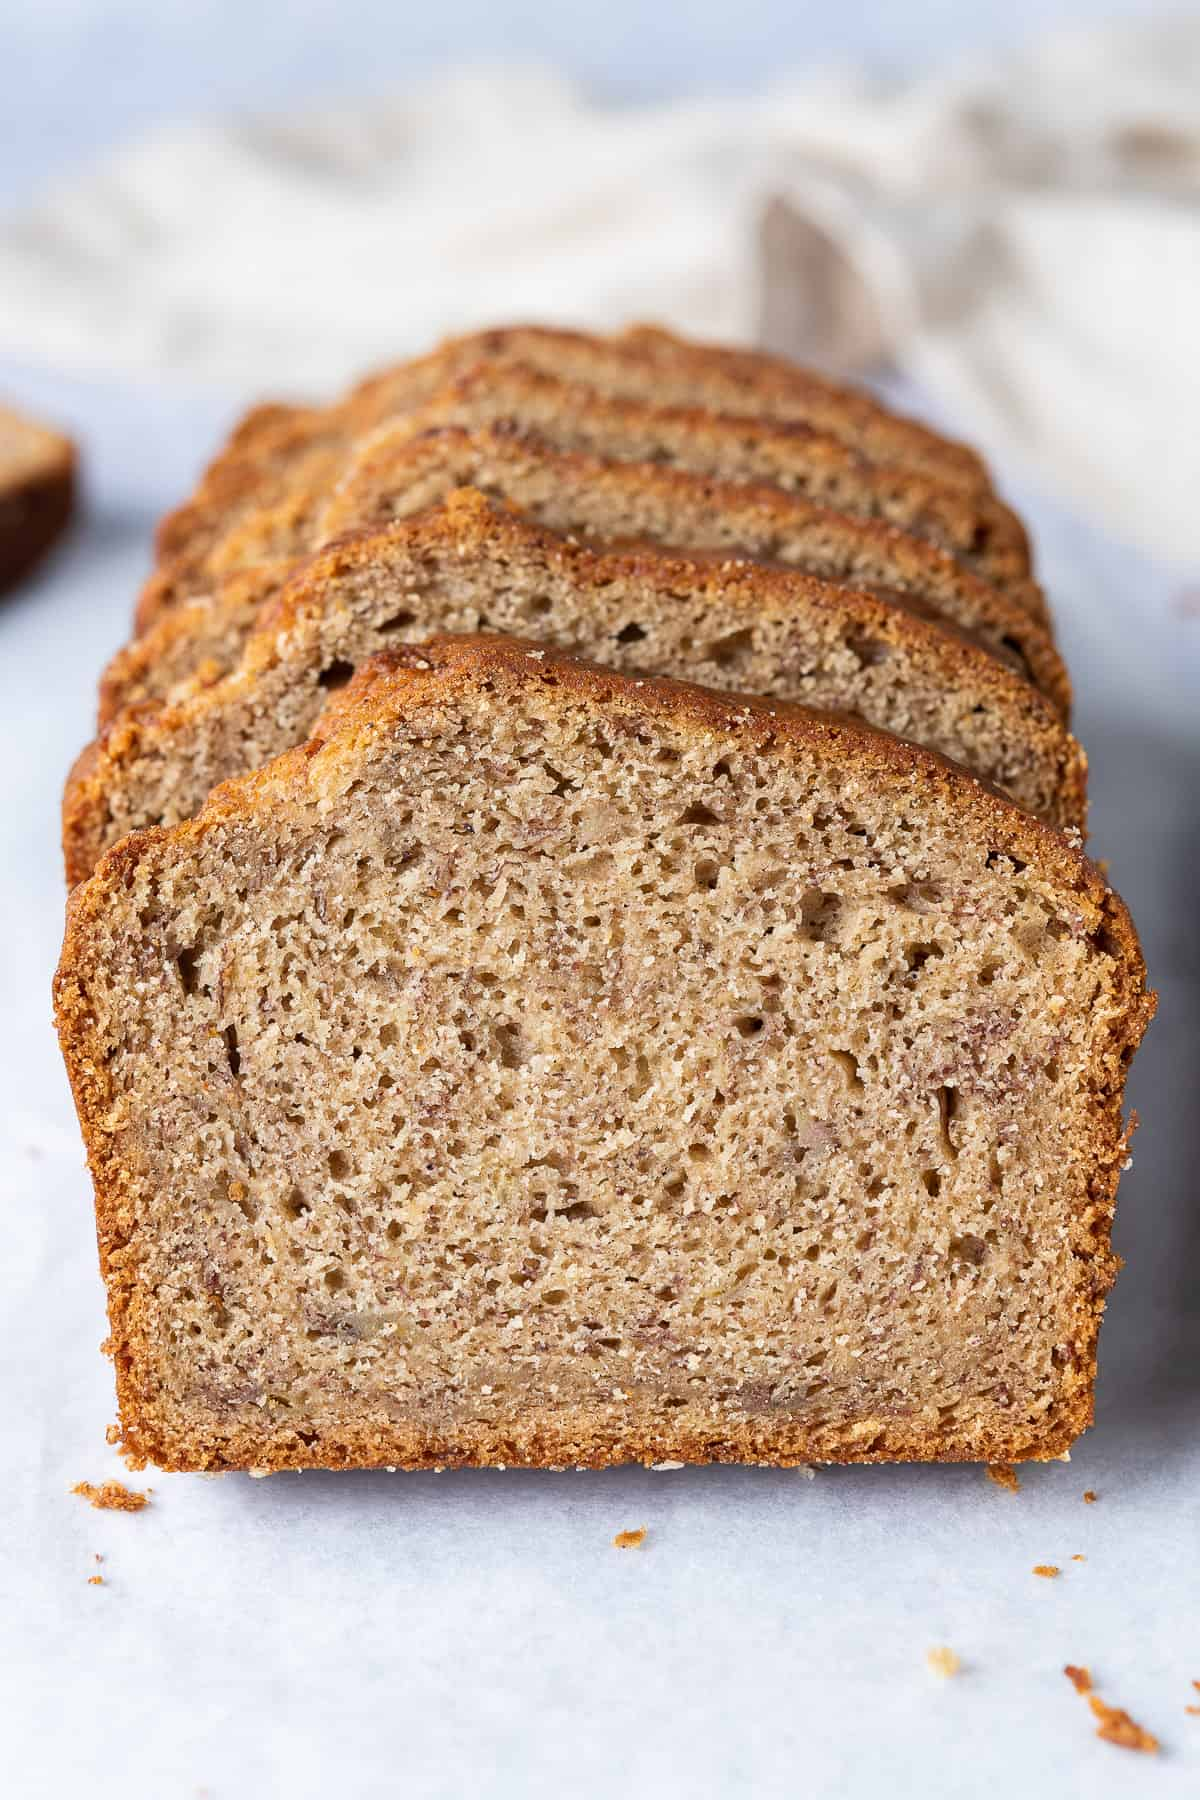 Close up of a slice of banana bread.